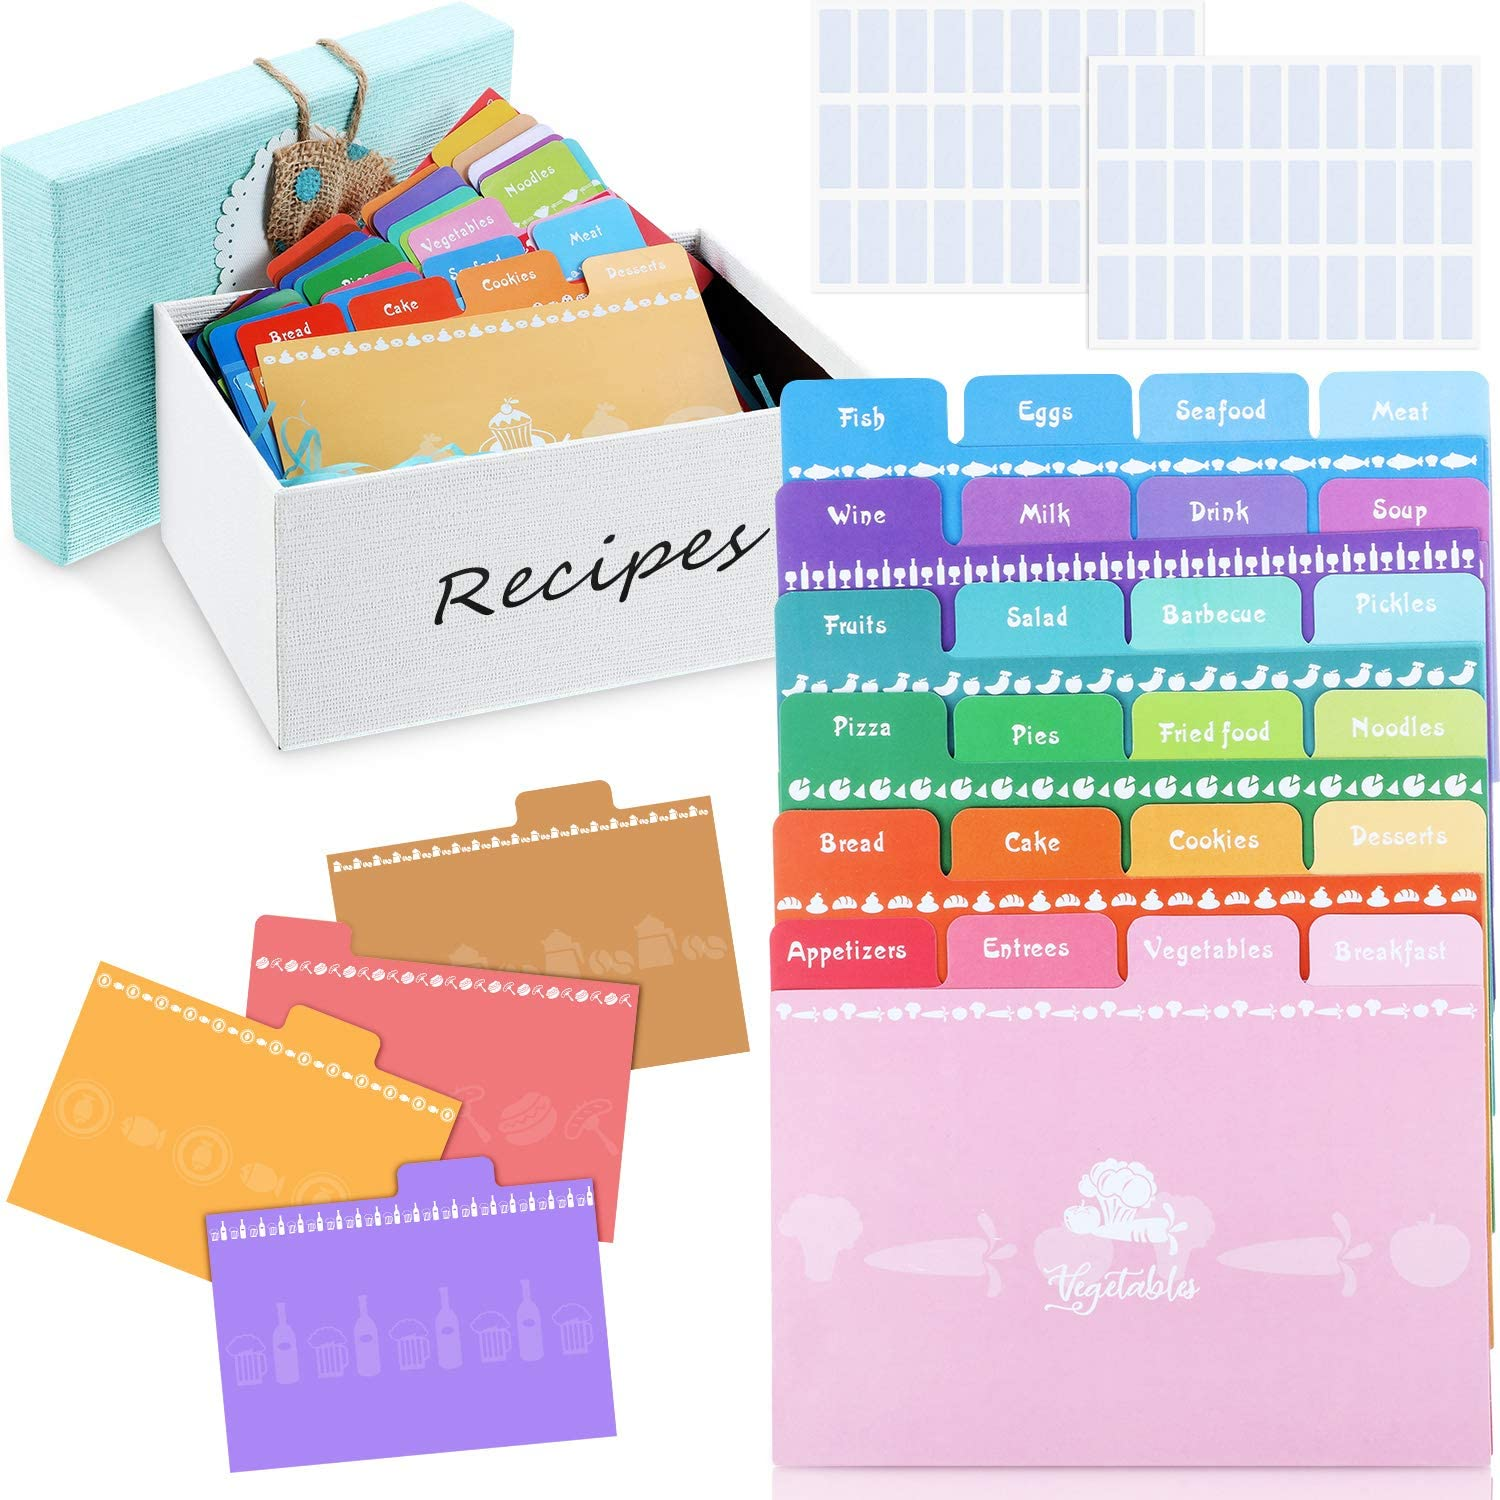 36 Pieces Recipe Card Dividers Tabs Include 24 Labelled and 12 Blank Tabs 60 Adhesive Labels Work with 4 x 6 Inch Cards for Recipe Box Organize, Rainbow Color Style